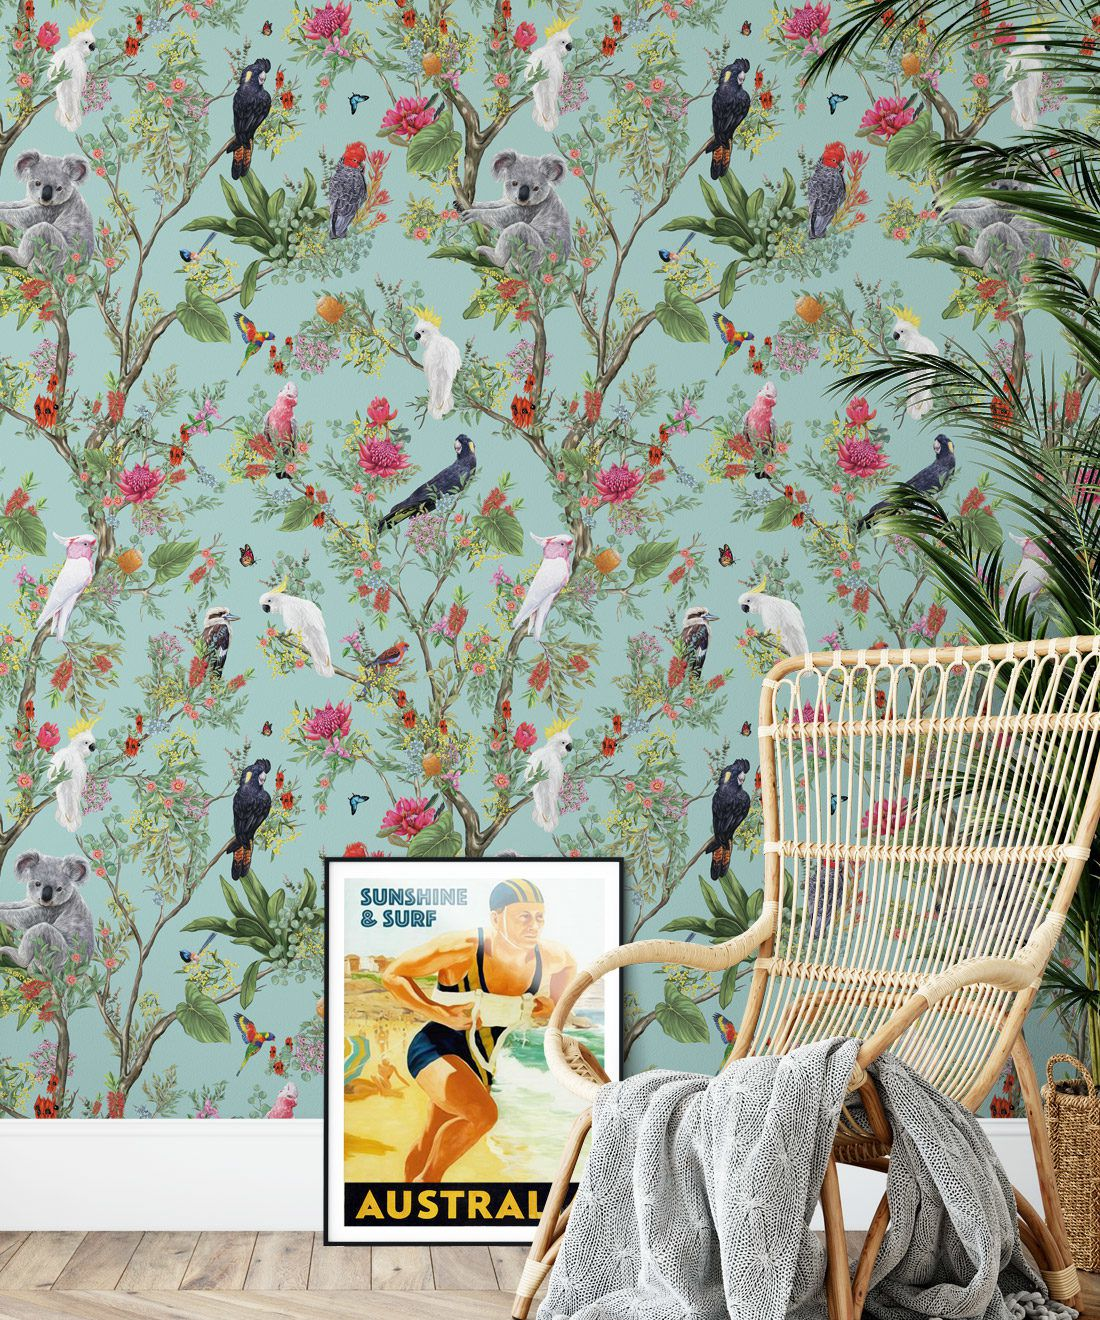 Australia Wallpaper • Cockatoos, Koalas, Parrots, Finches • Milton & King USA • Mint Green Wallpaper Insitu